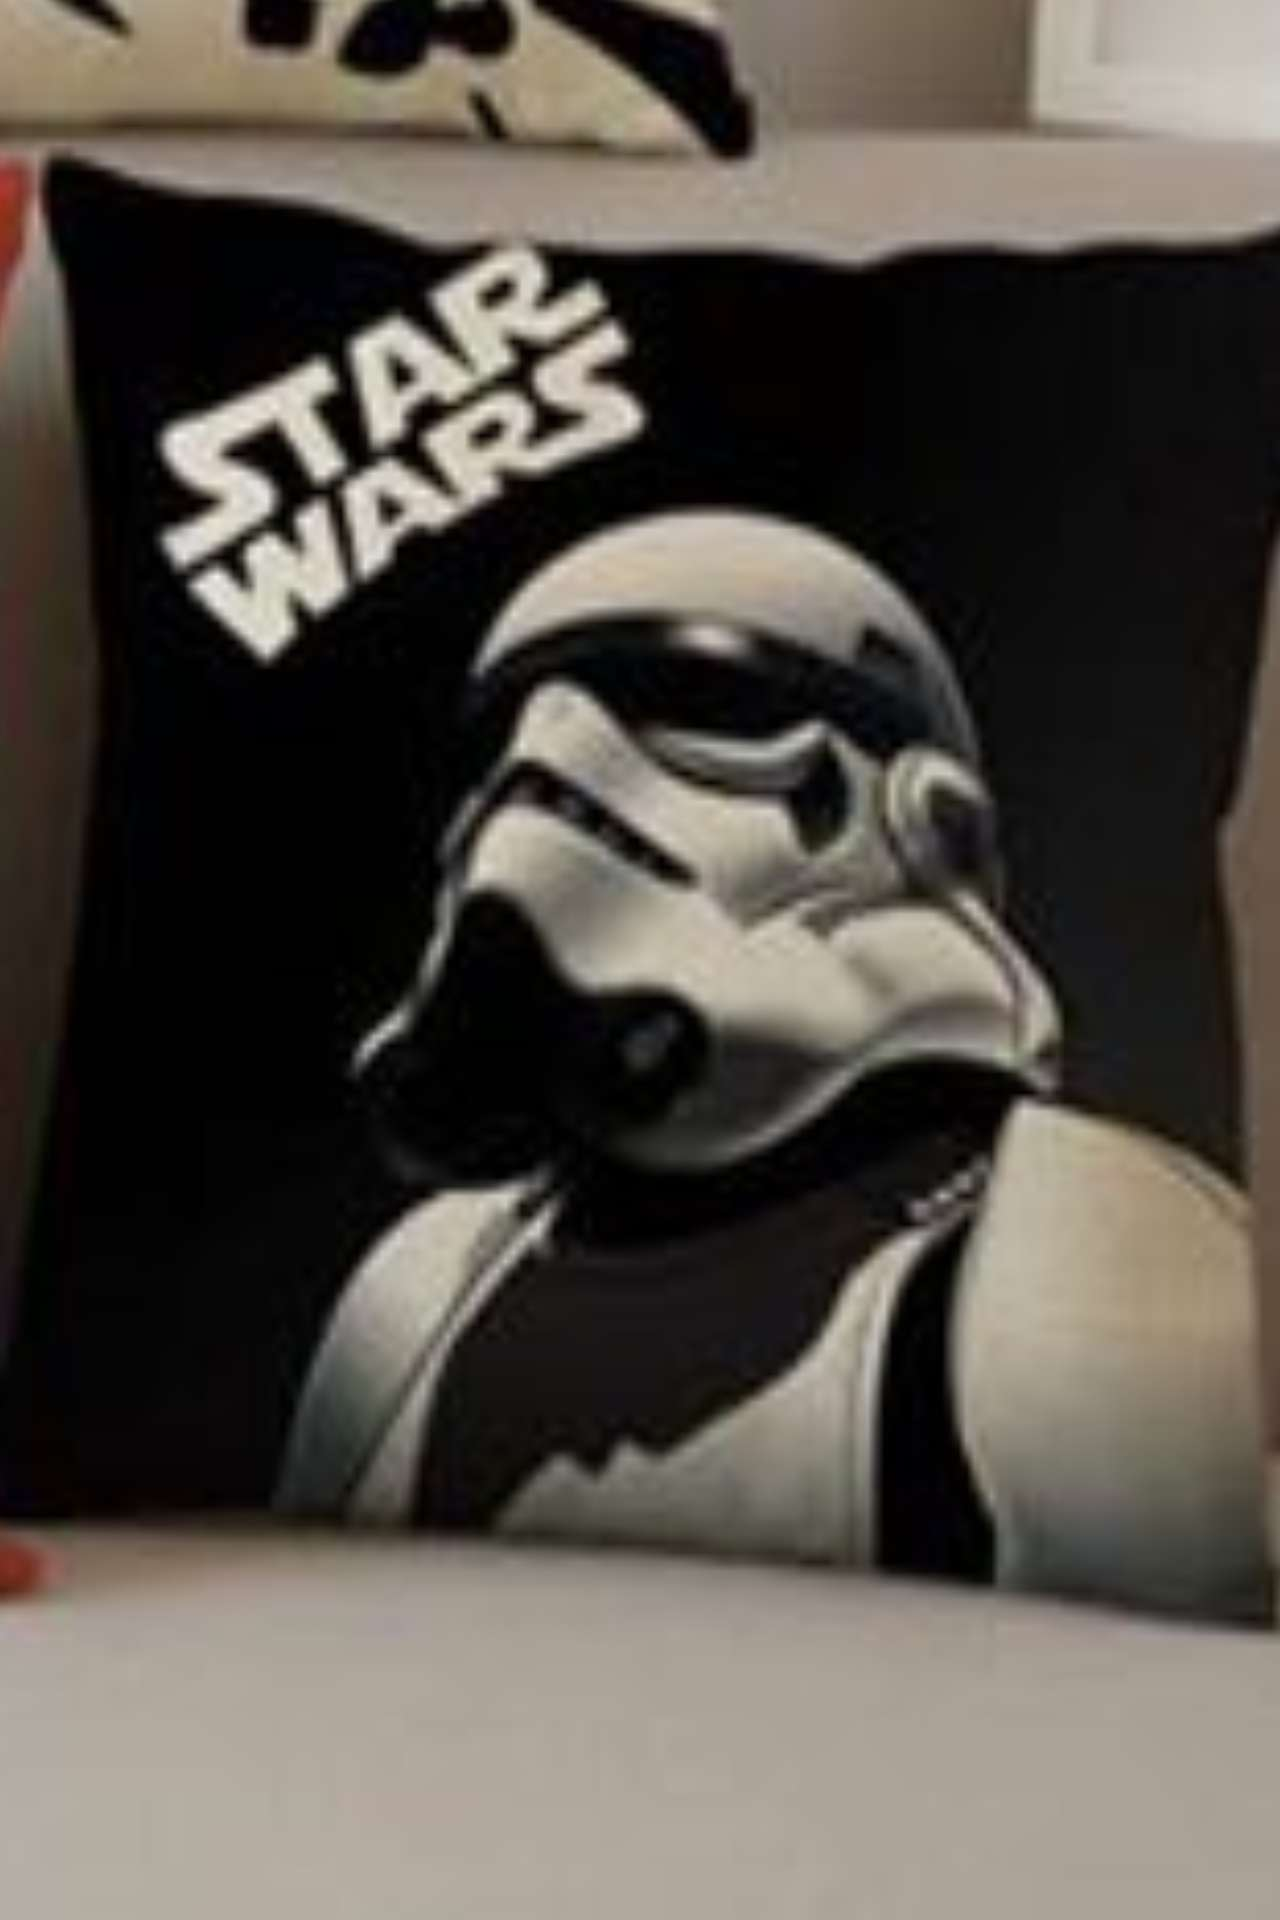 Disney Star Wars Trooper Cushion Luxury Black Pose